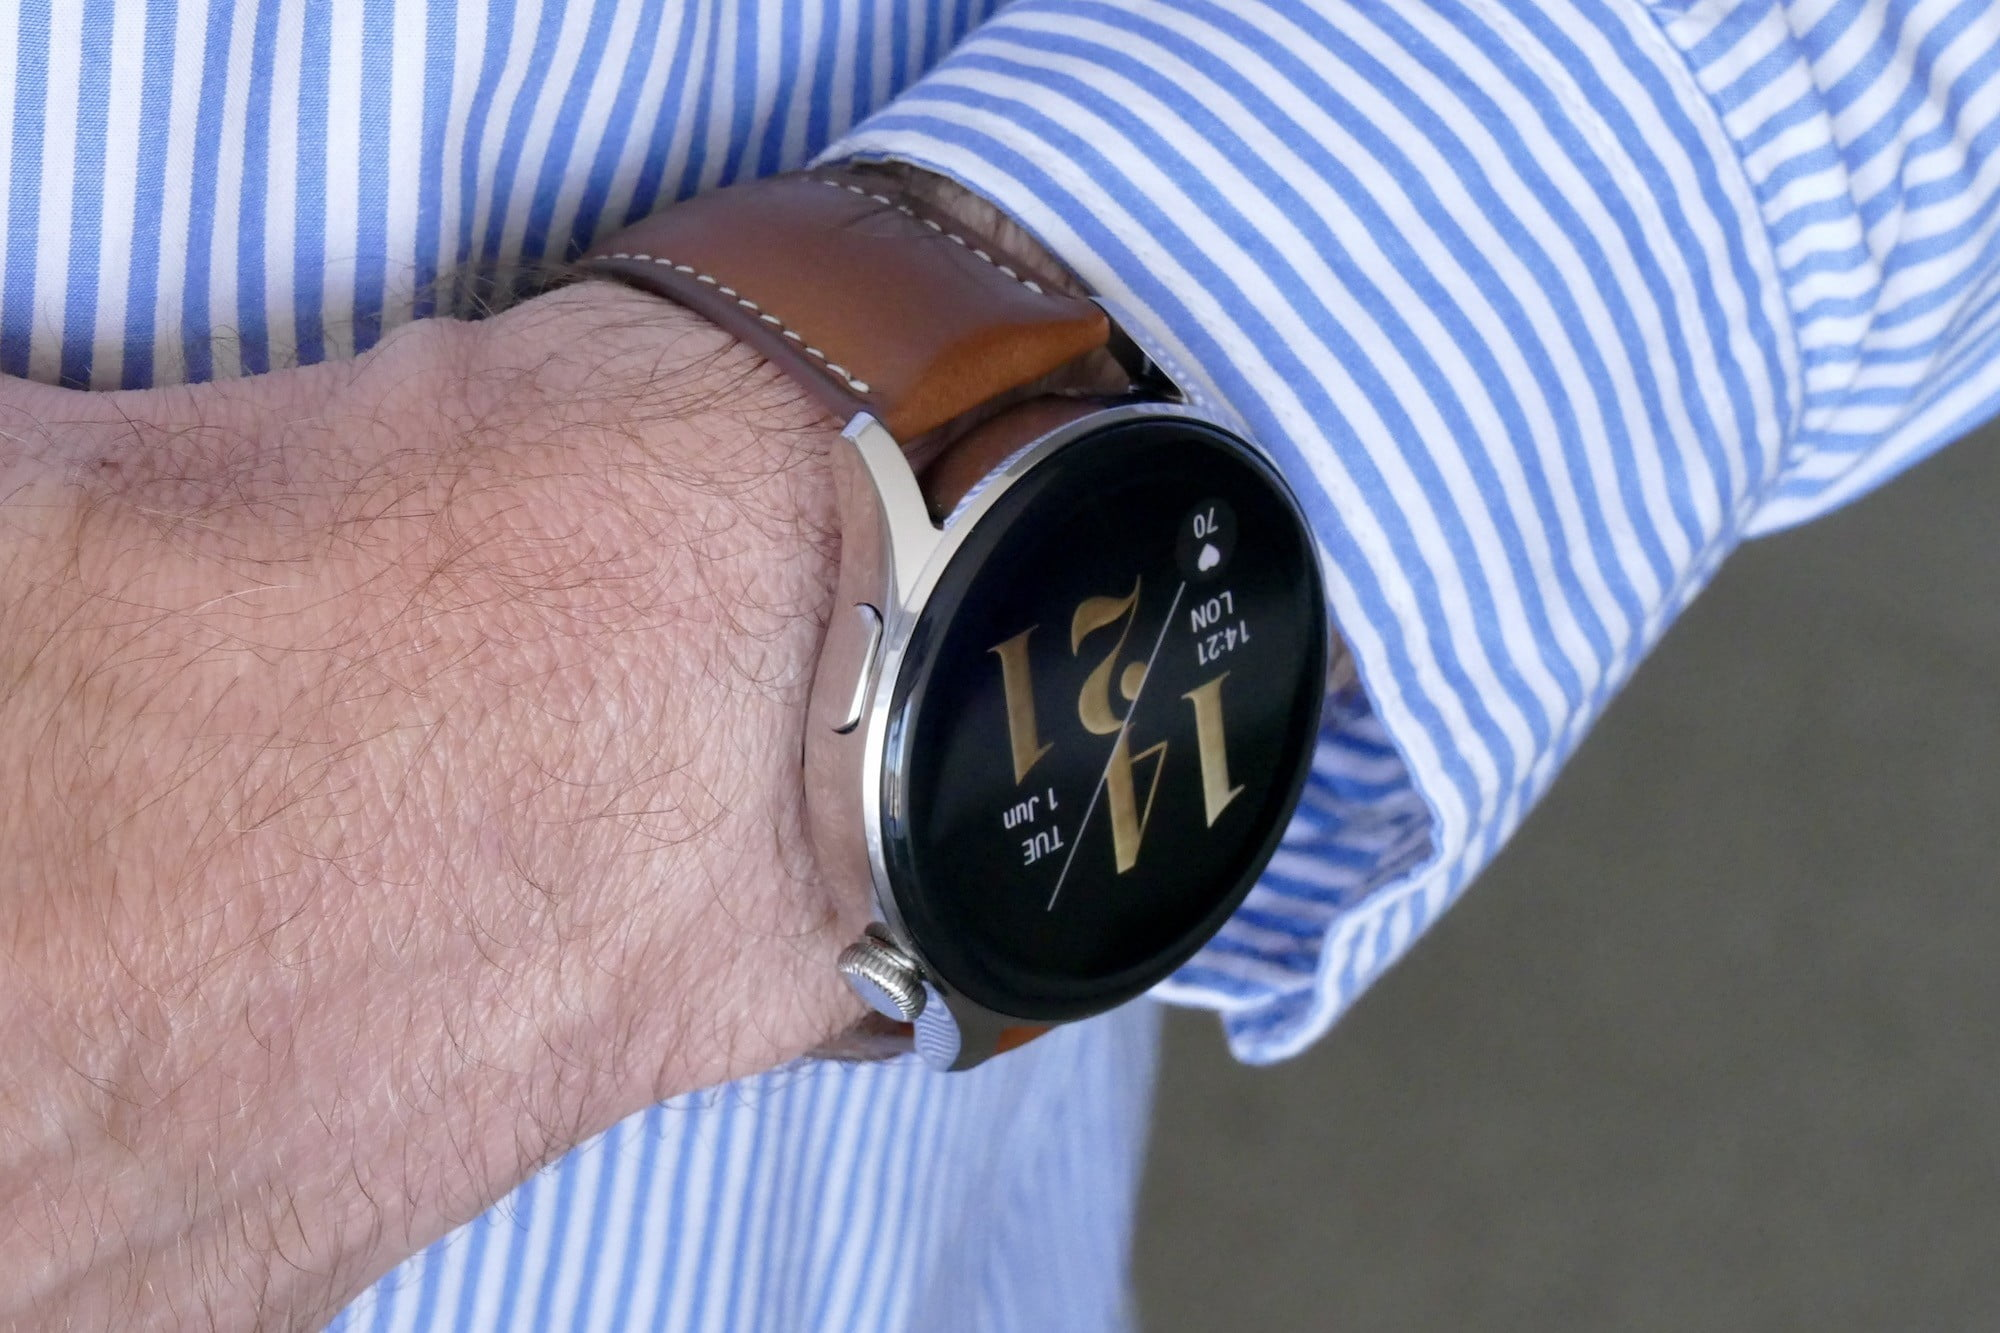 Huawei Watch 3 from the side on a wrist